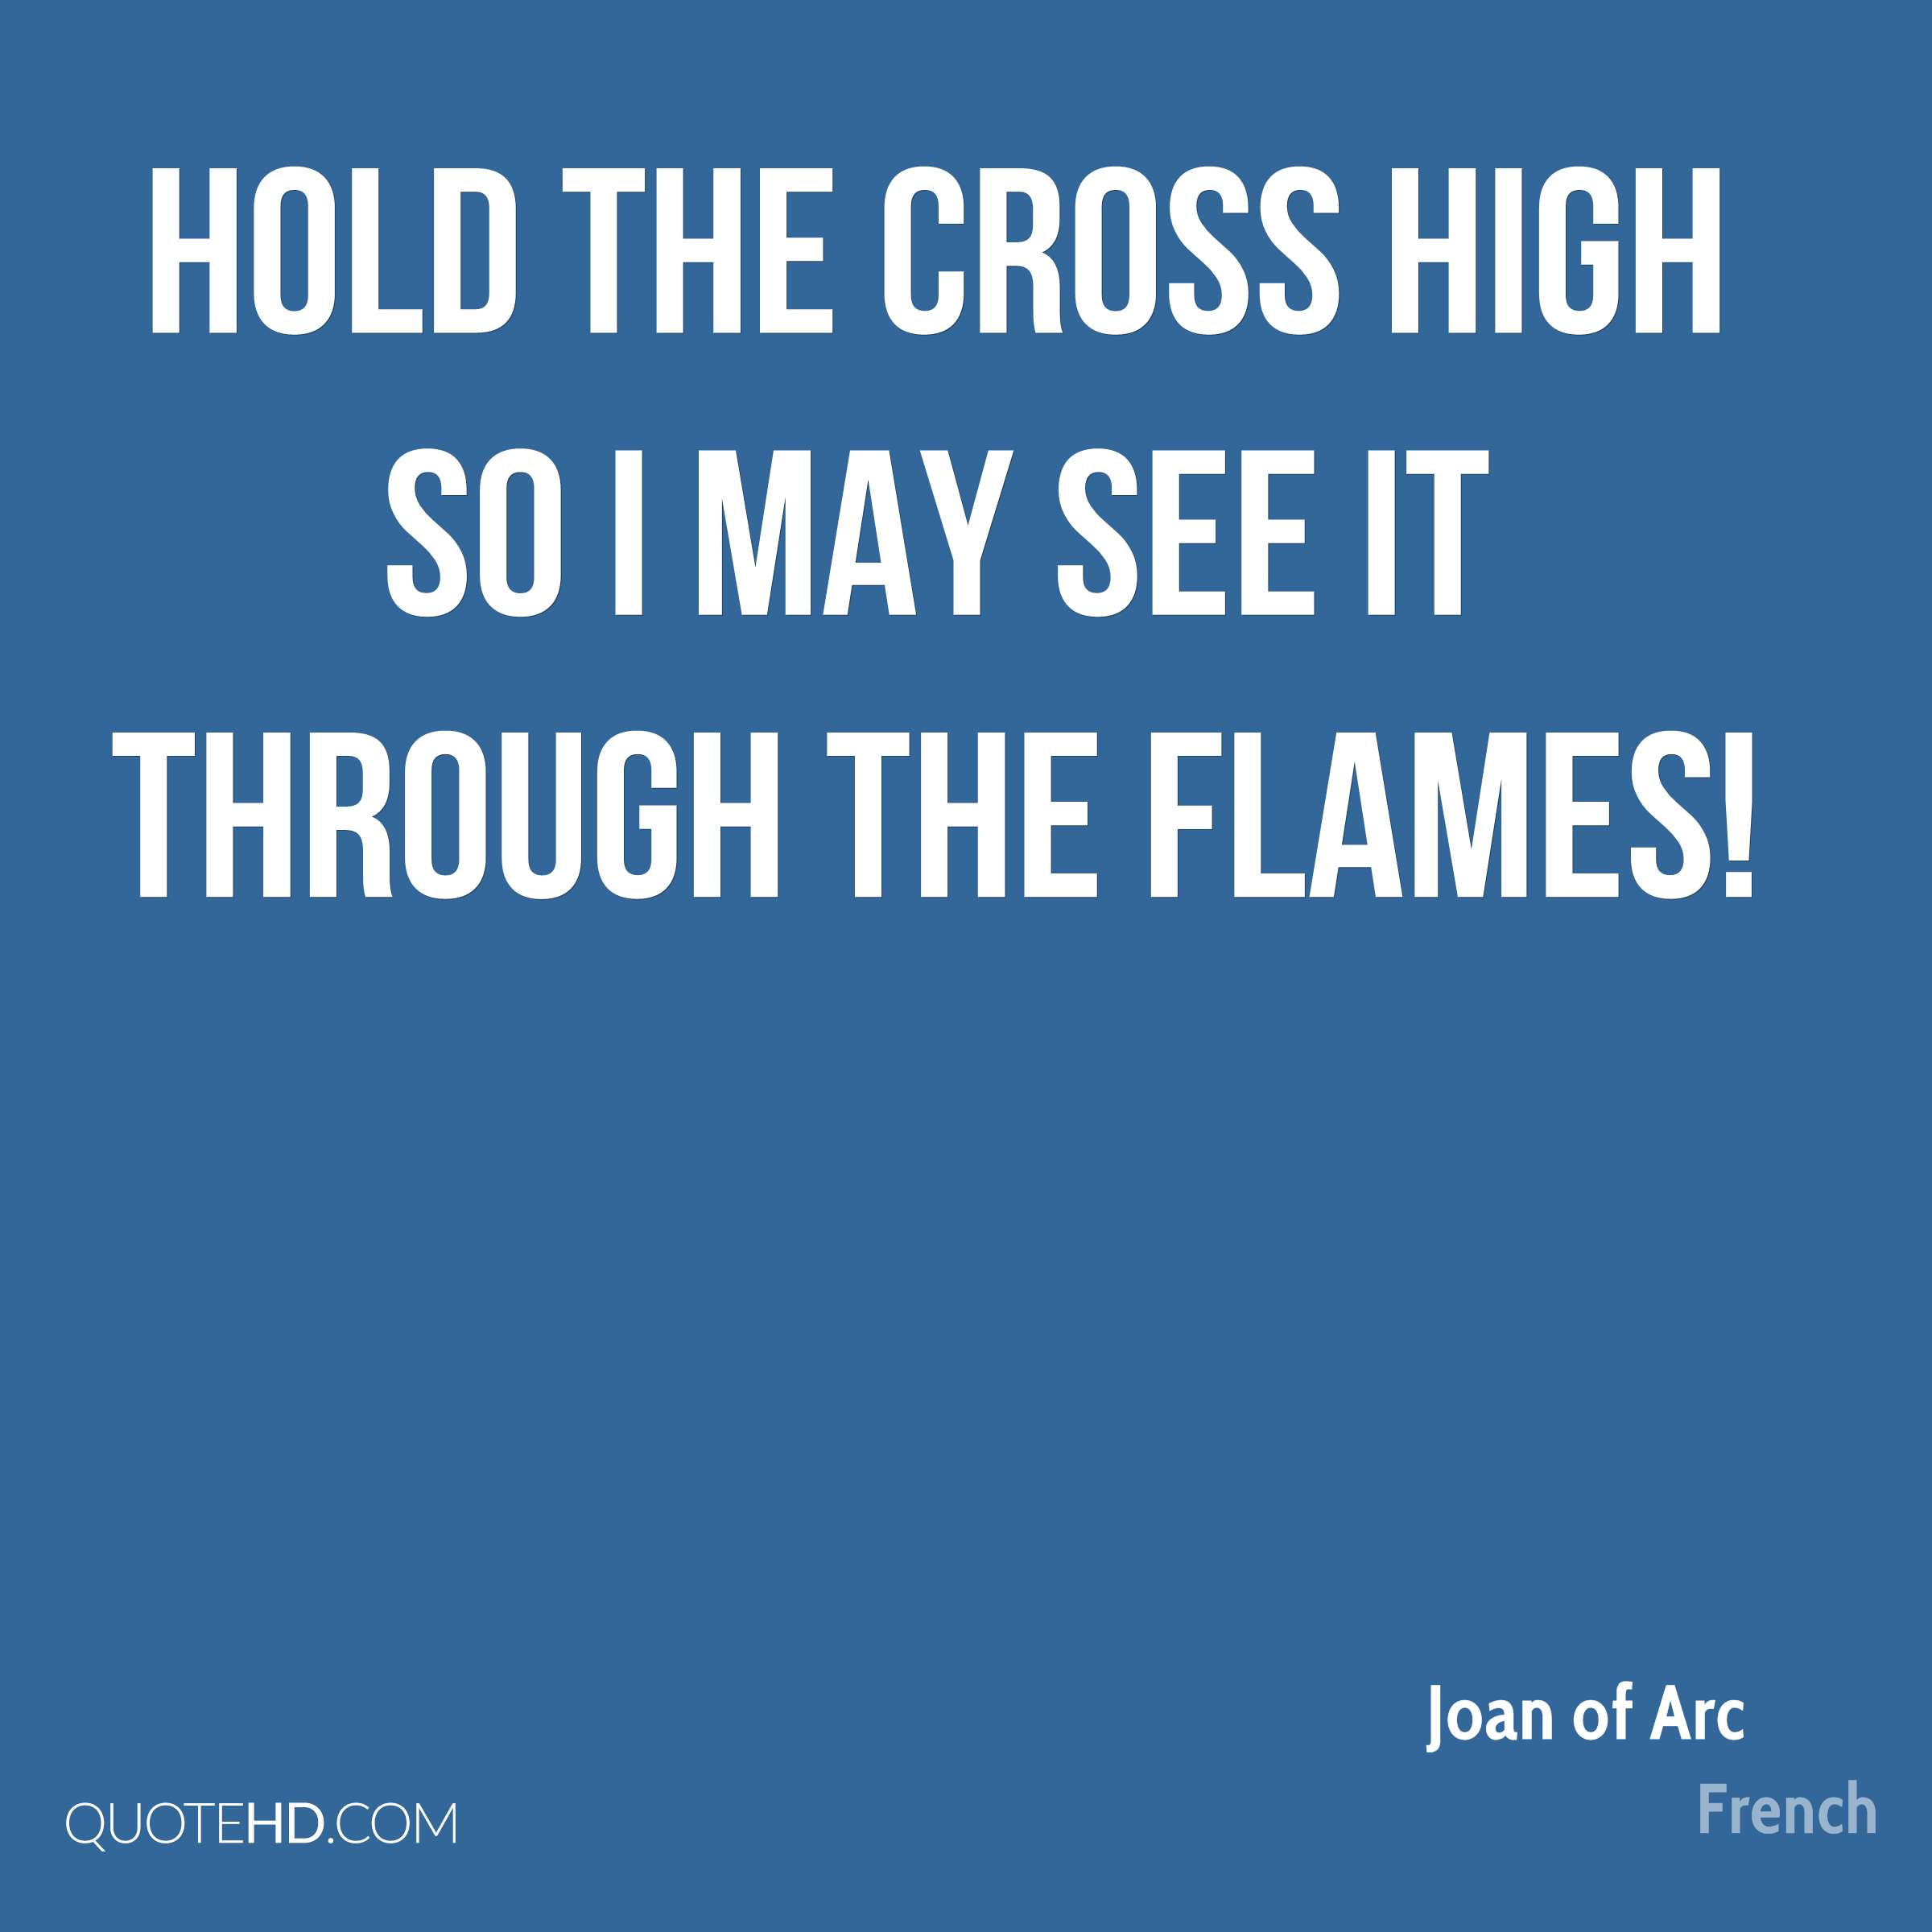 Hold the cross high so I may see it through the flames!